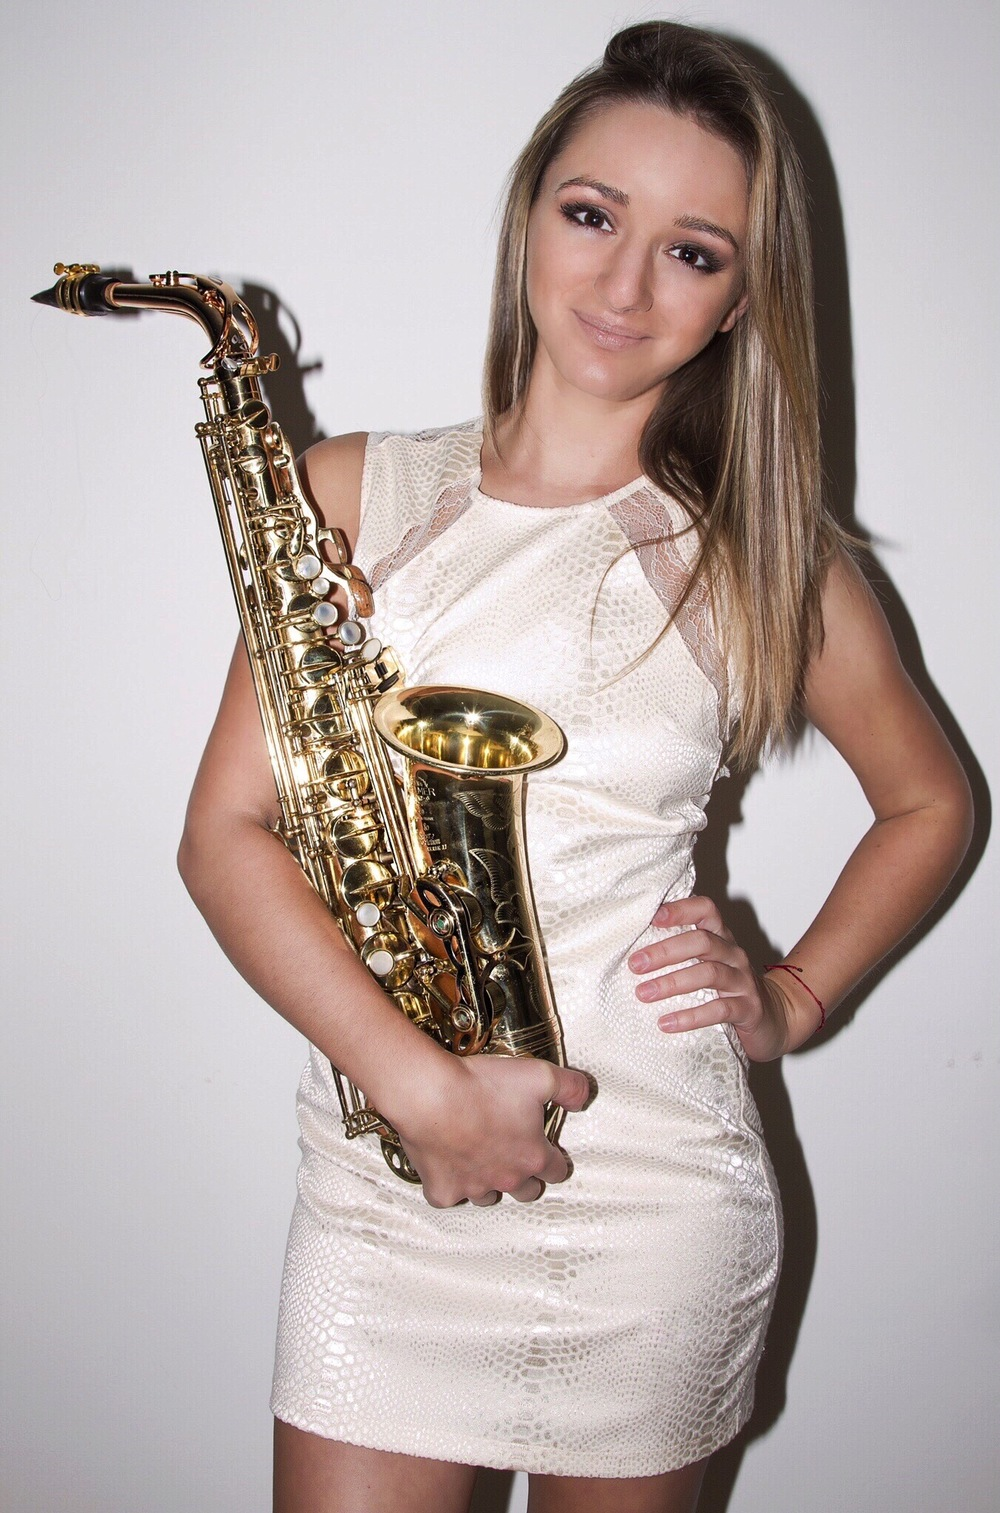 Girl sax player Mandy Faddis in LA